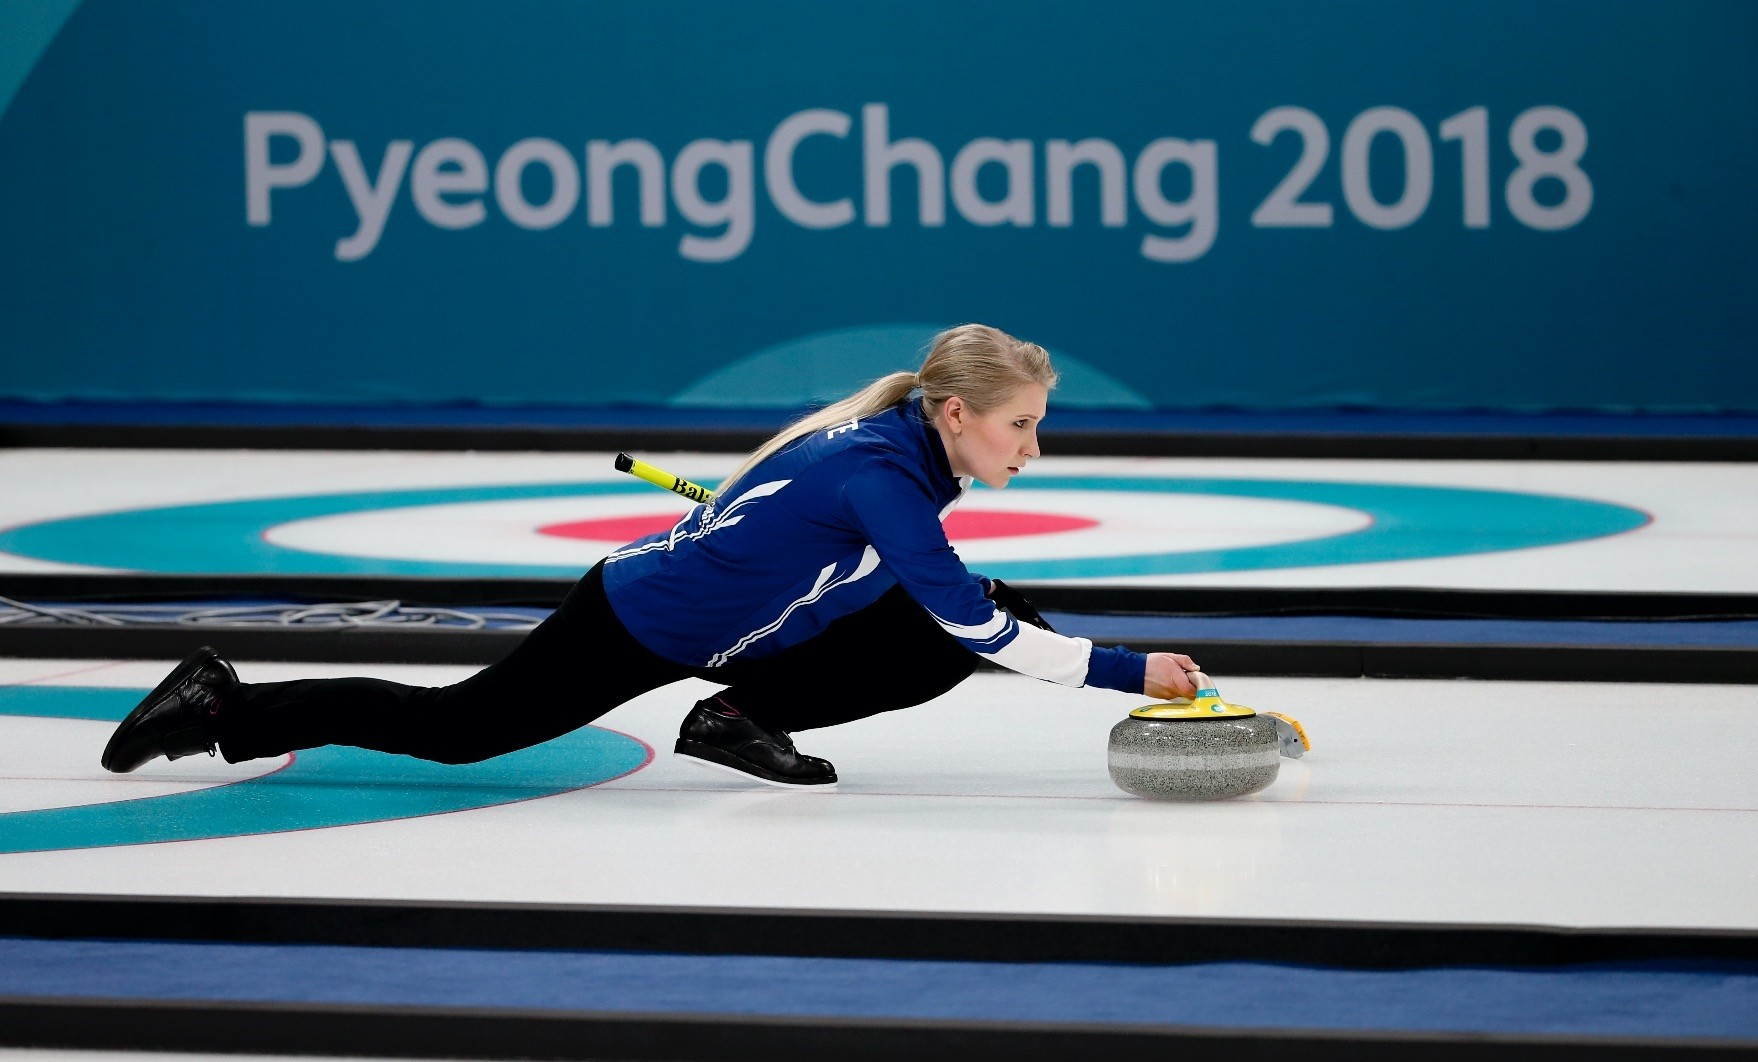 Finlandu2019s Oona Kauste throws a rock while training ahead of the 2018 Winter Olympics in Gangneung, South Korea.